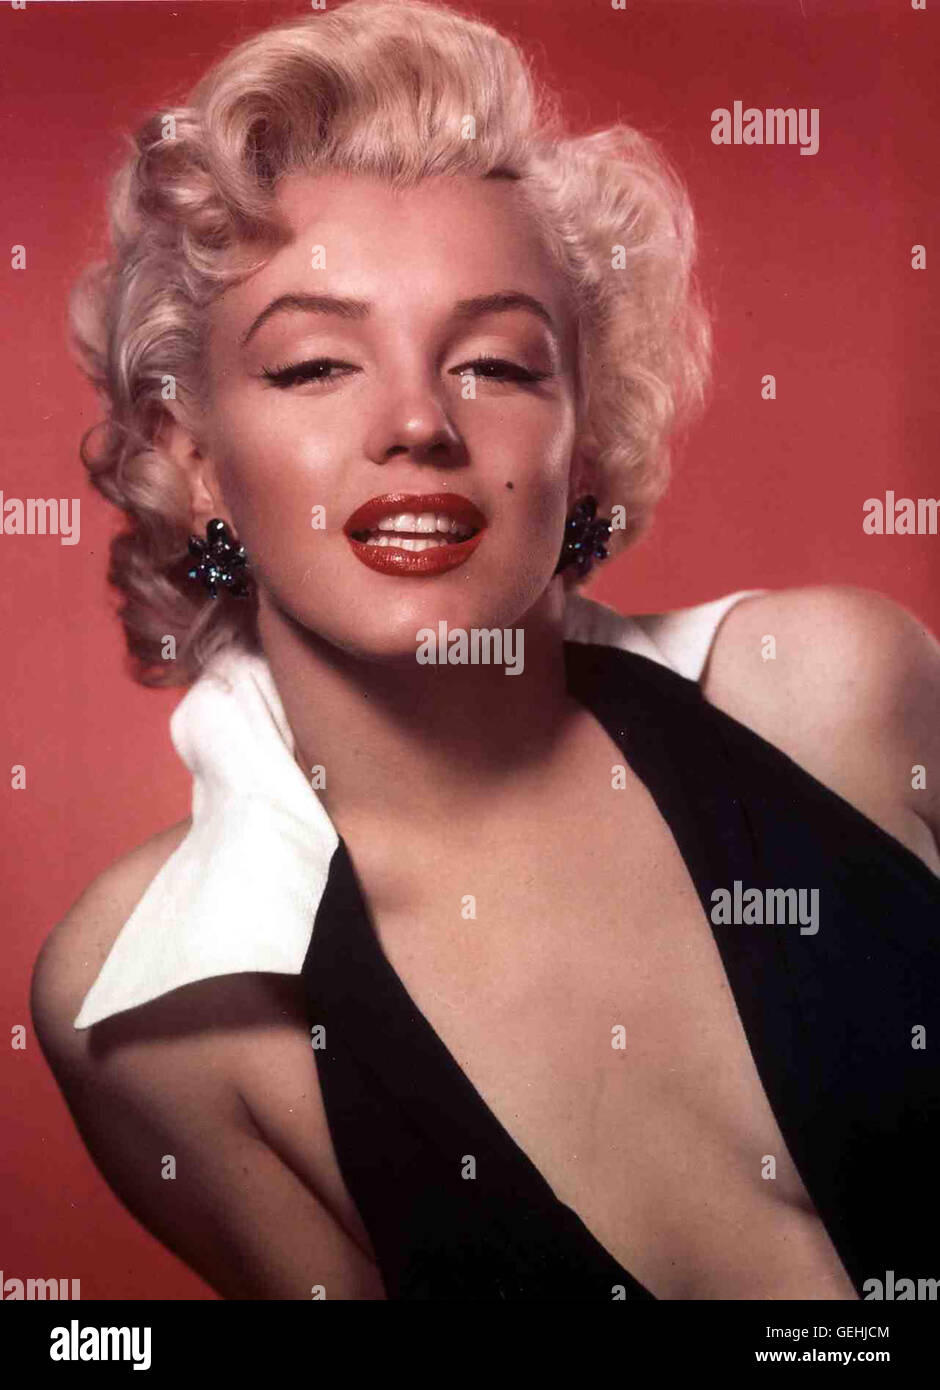 Marily Monroe *** Local Caption *** 0, Monroe, Marilyn, Marilyn Monroe - Jenseits Der Legende - Stock Image